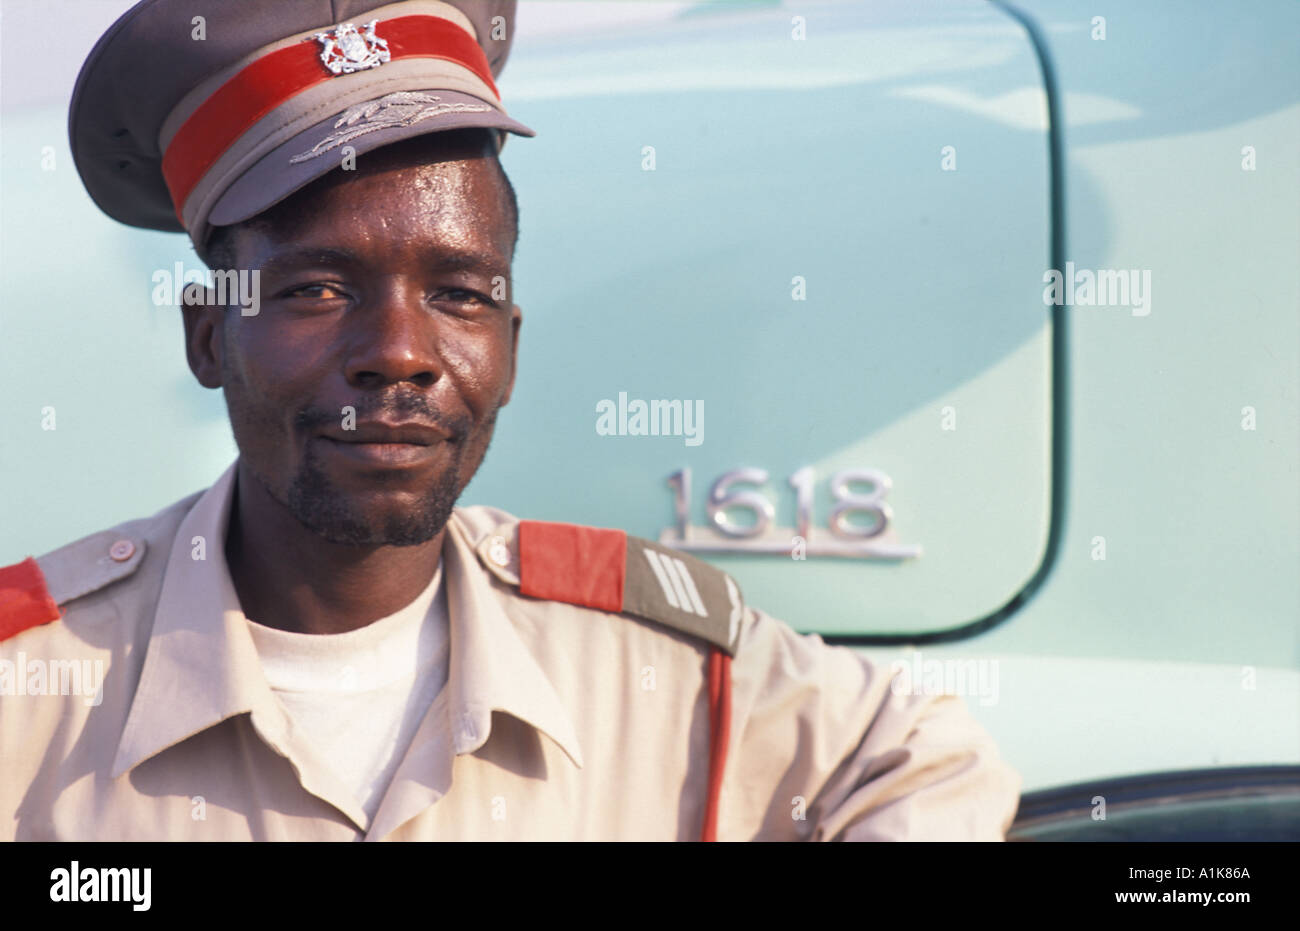 Member of paramilitary group in uniform for the main Herero festival Celebrations are held in Okahandja Maherero day Namibia - Stock Image